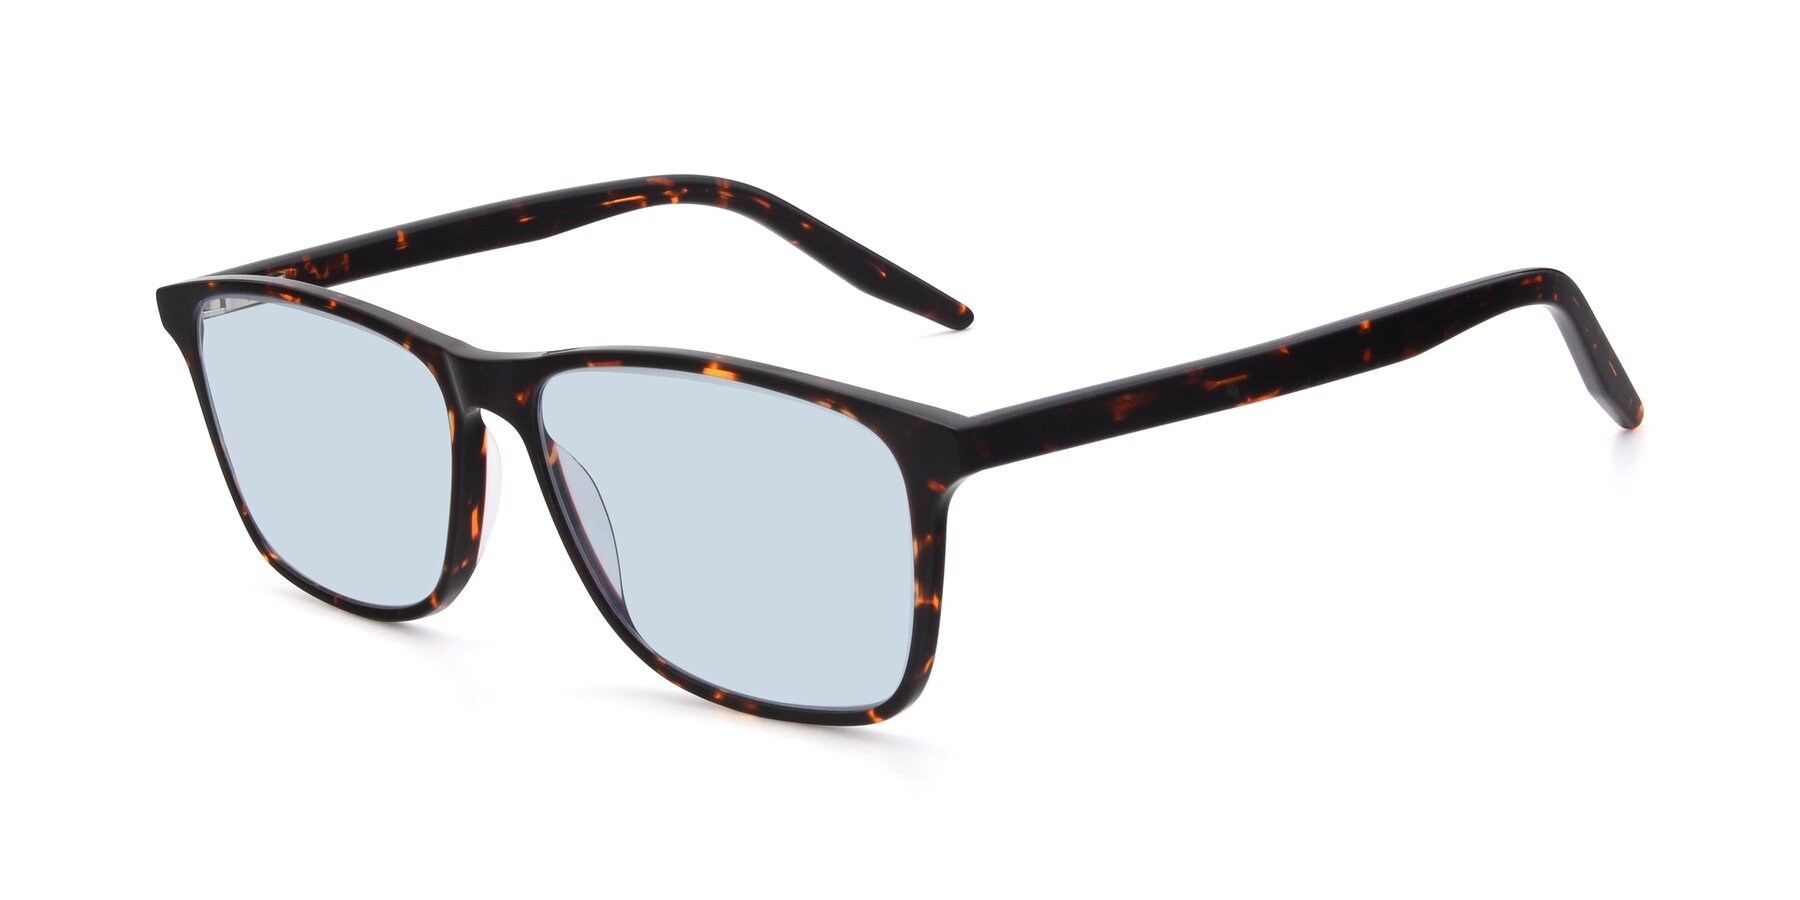 Angle of 17500 in Tortoise with Light Blue Tinted Lenses